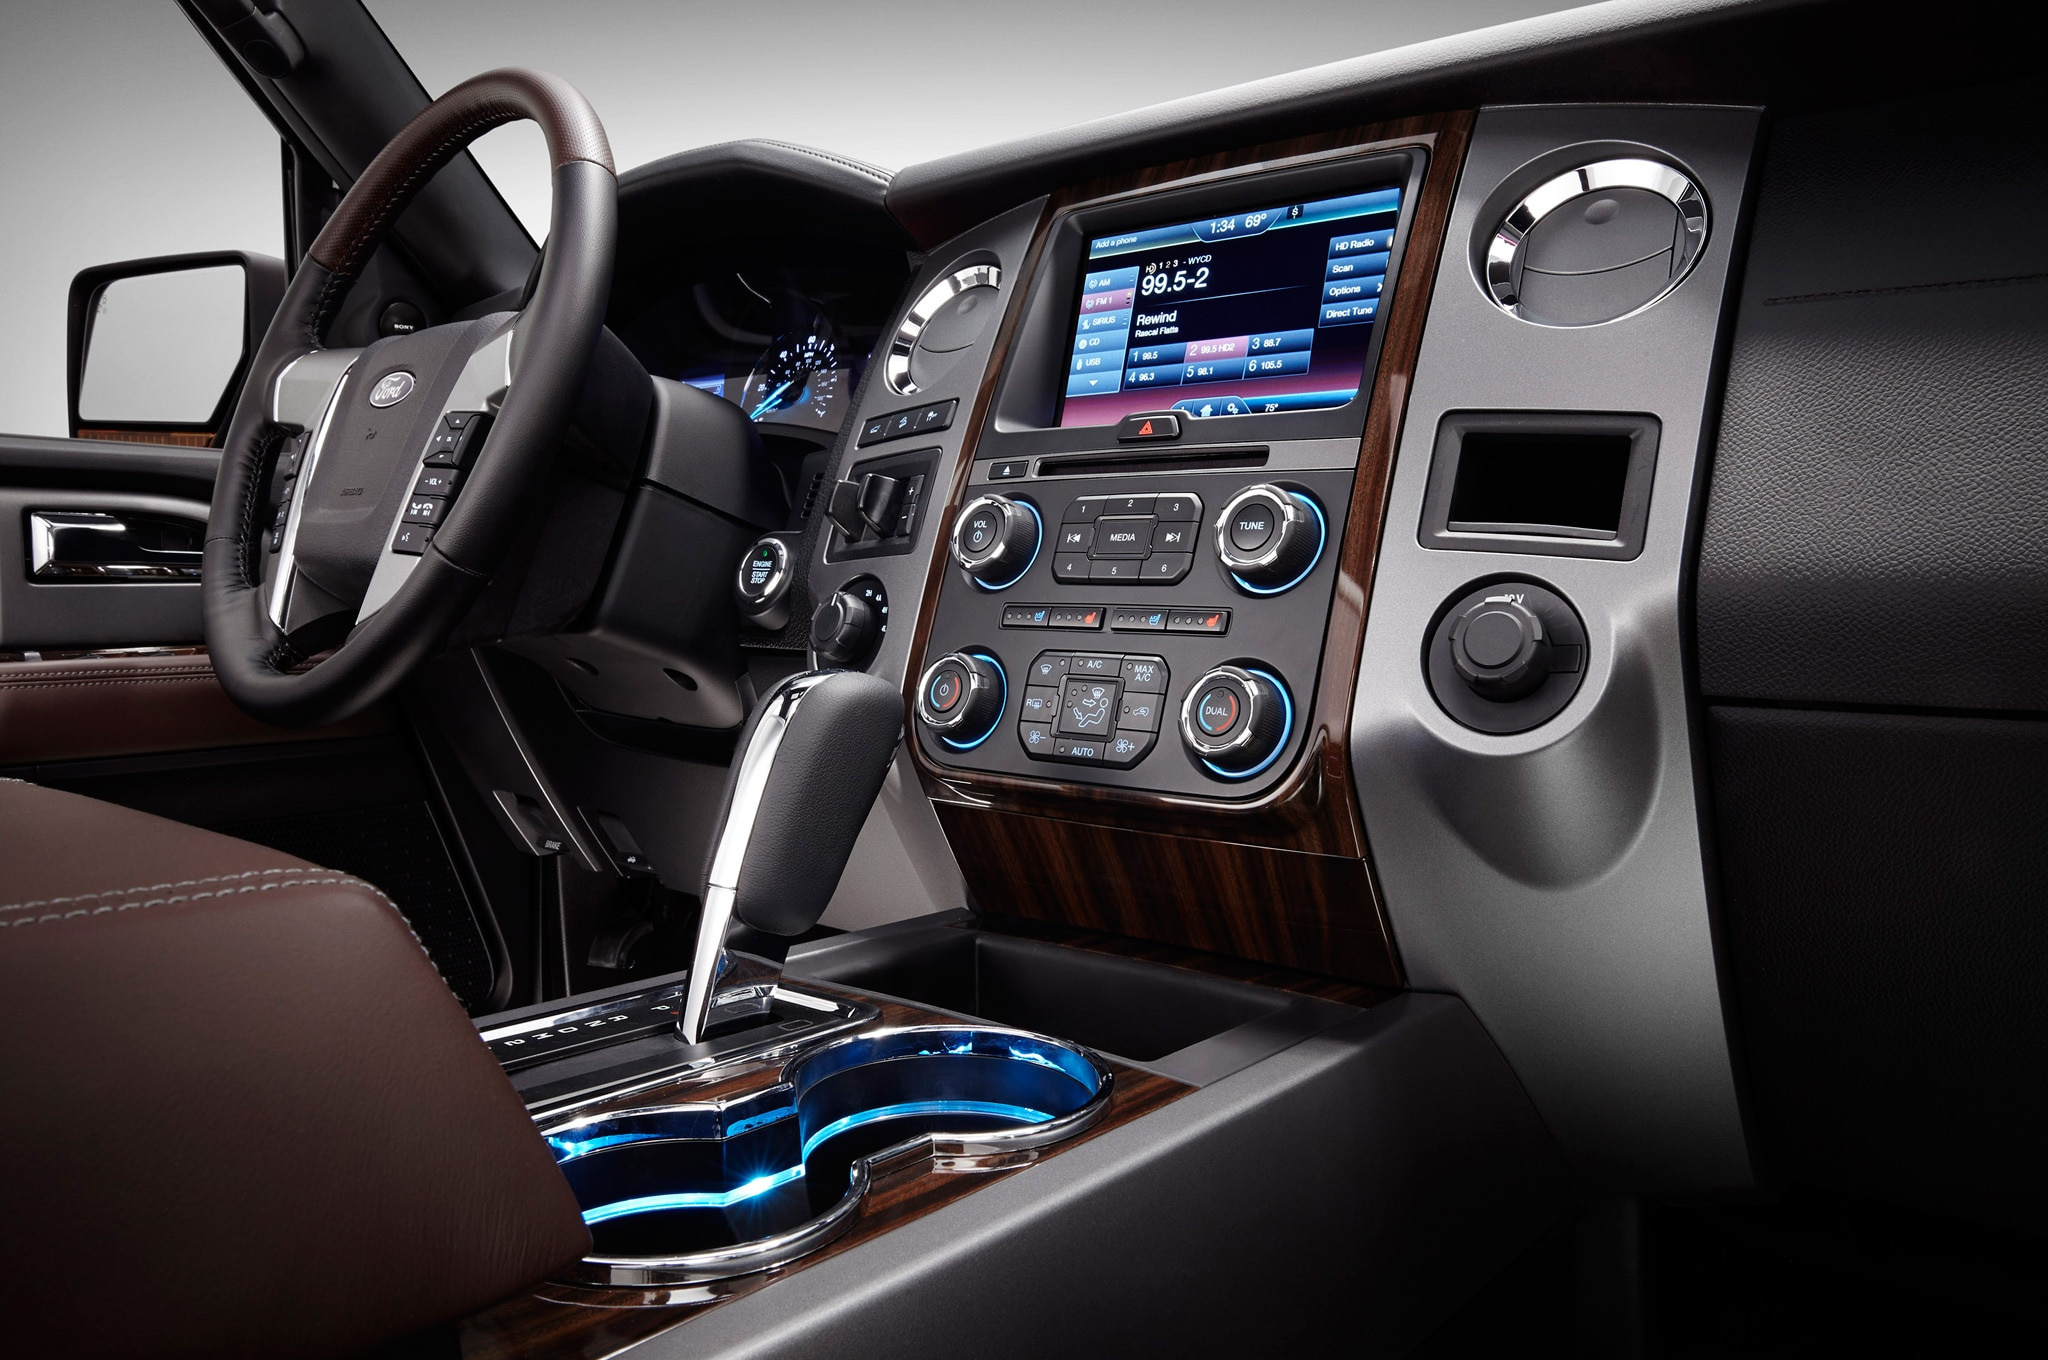 2015 Ford Expedition Updated With EcoBoost V-6 Engine ...